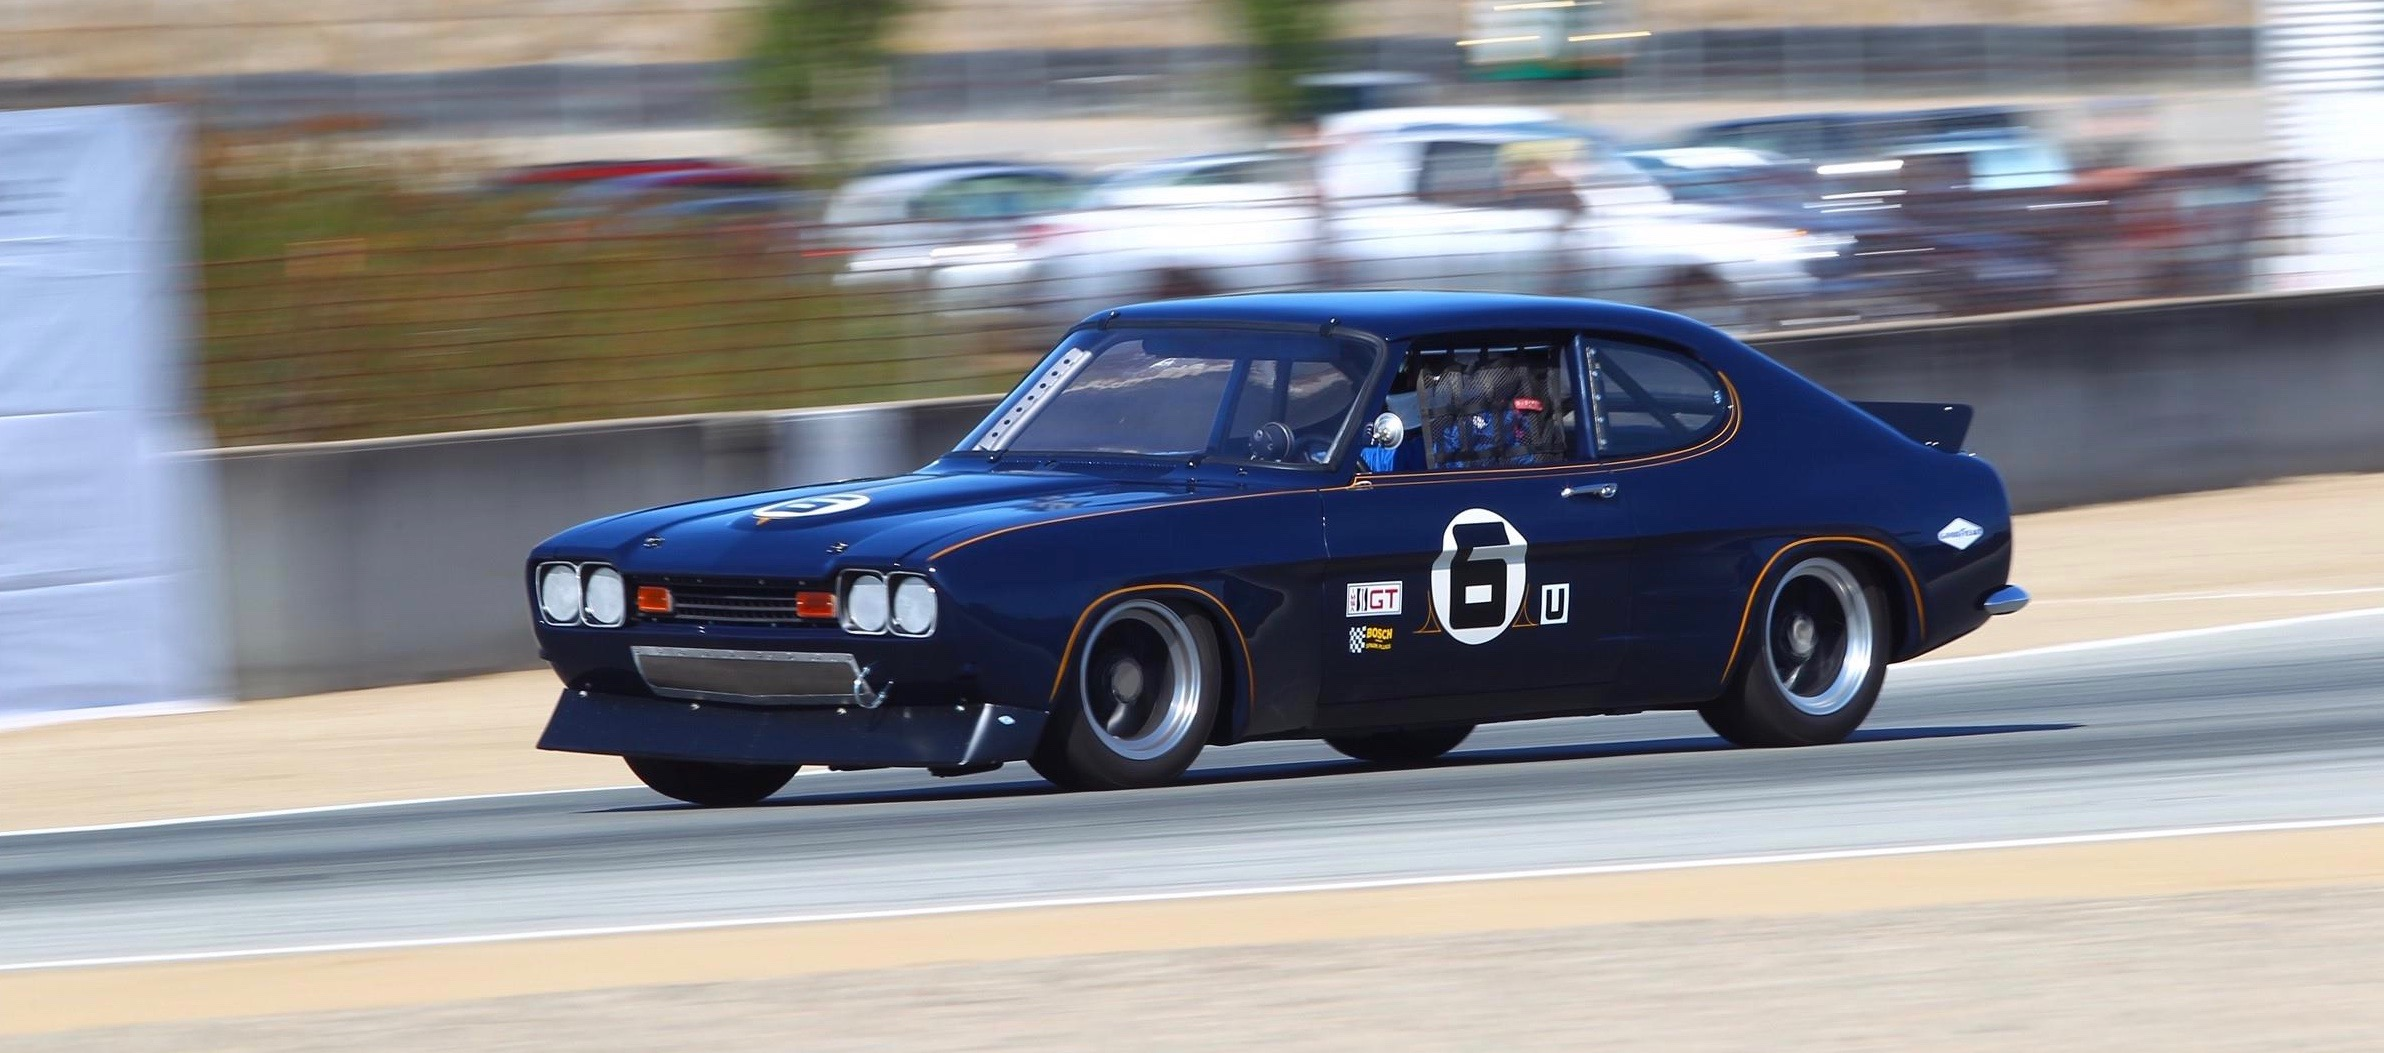 Ford Capri, This '73 Ford Capri is ready for vintage racing, ClassicCars.com Journal